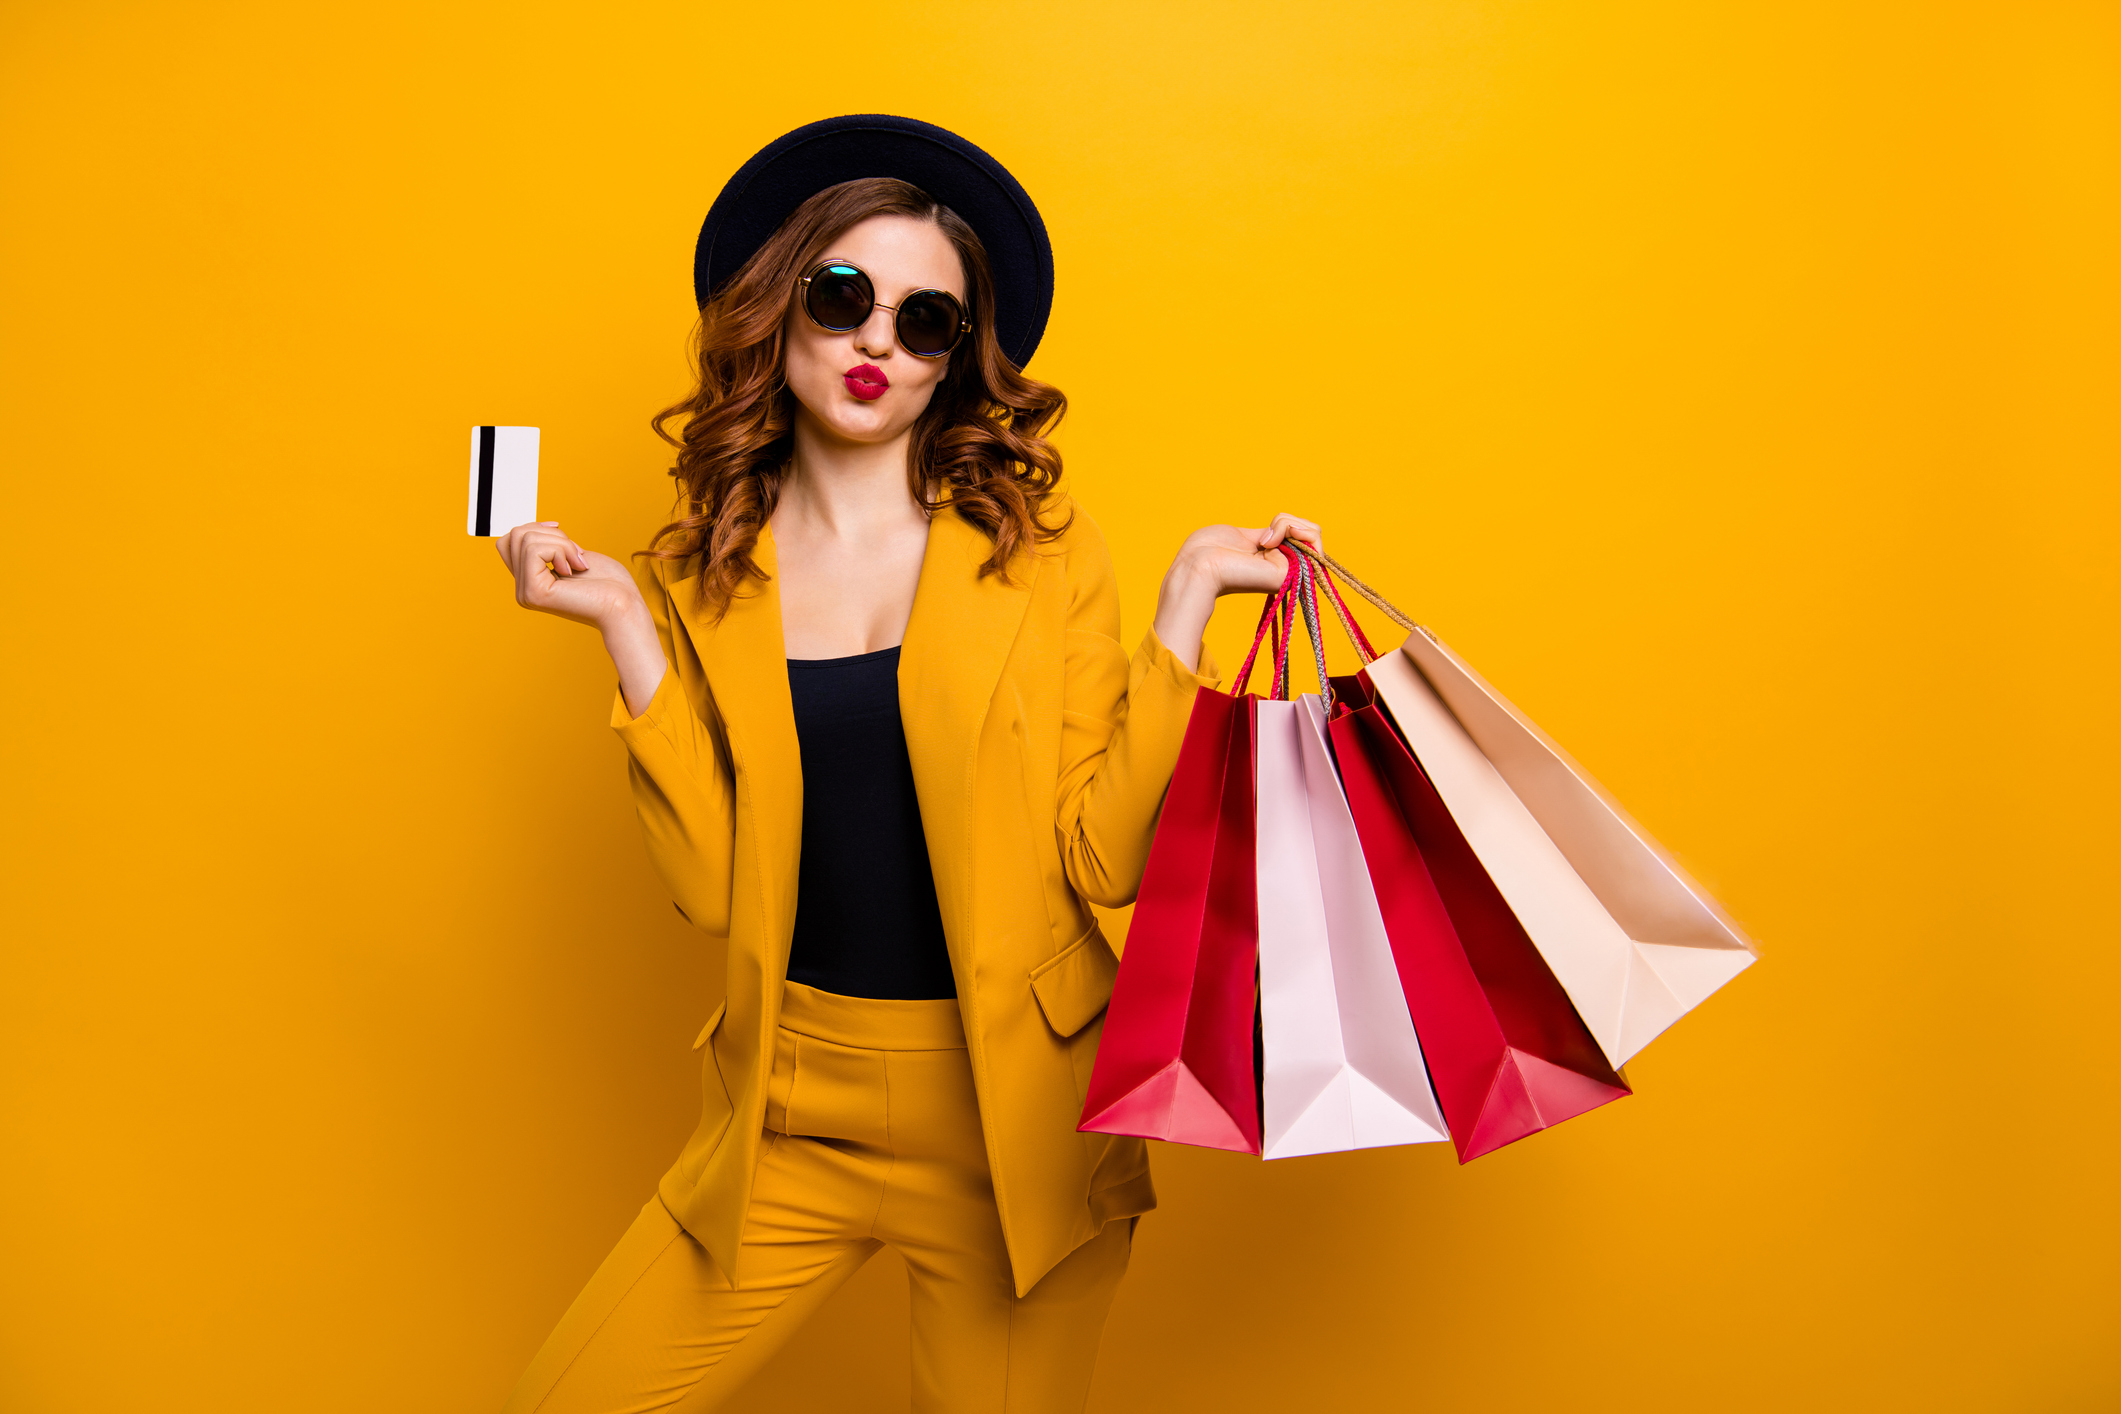 beautiful girl holding a debit card and shopping bags